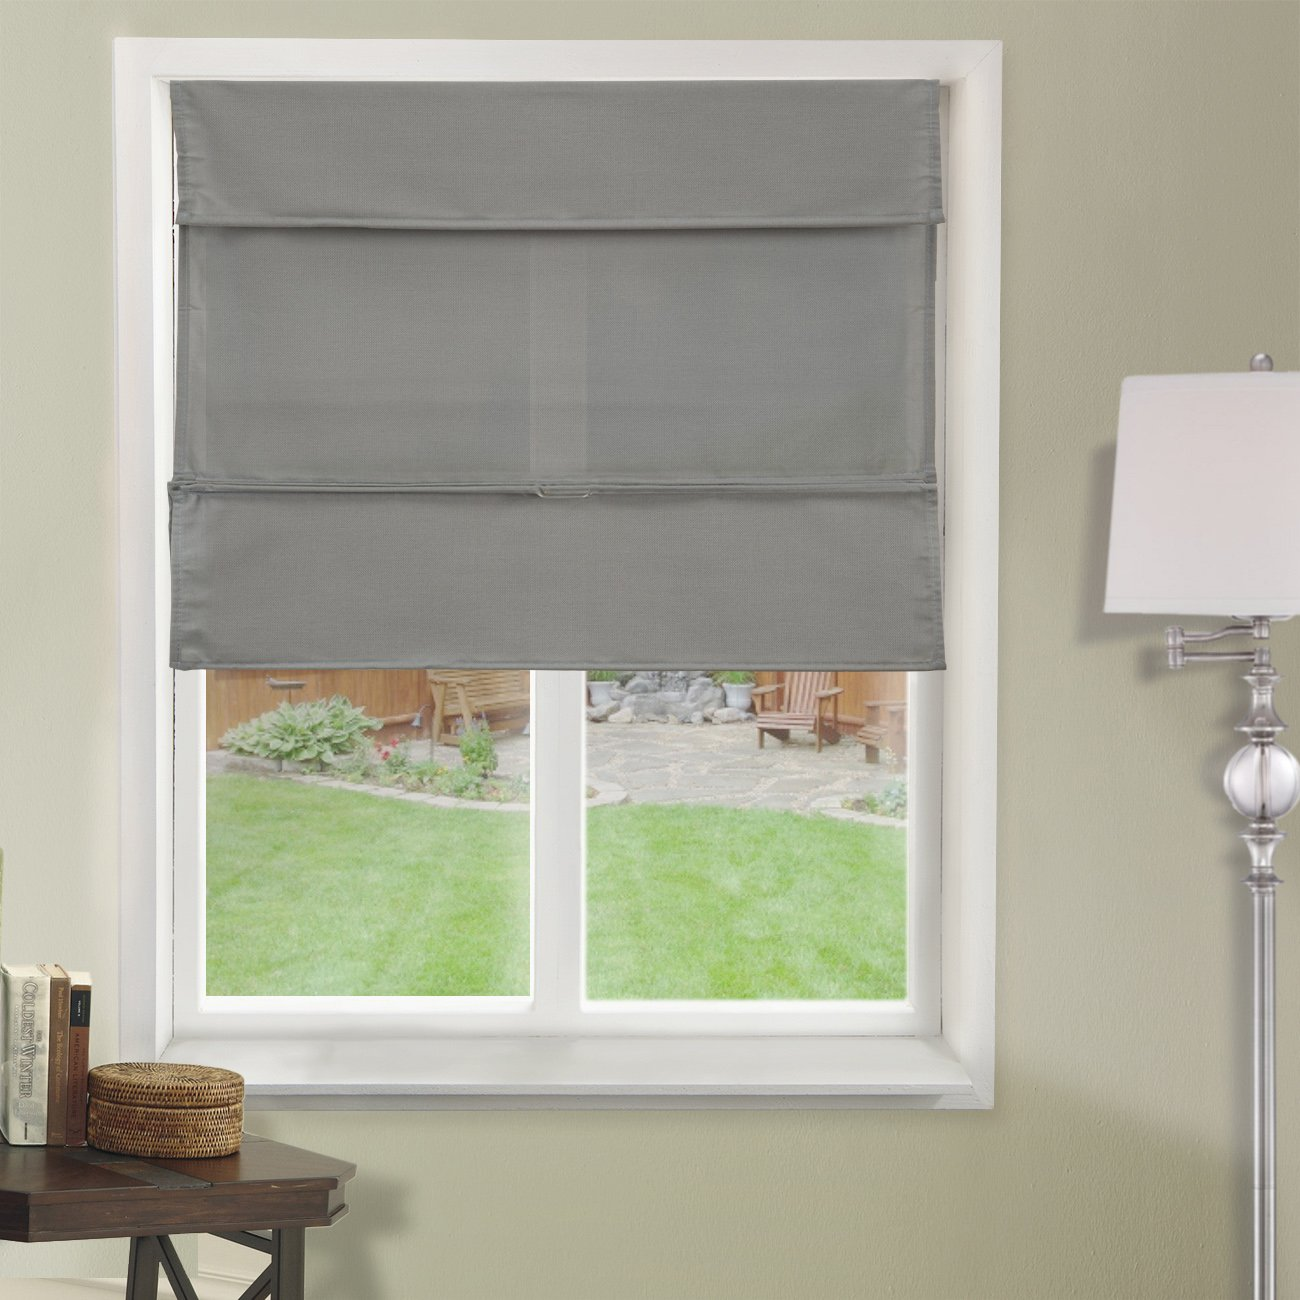 Chicology Cordless Magnetic Roman Shades / Window Blind Fabric Curtain Drape, Light Filtering, Privacy - Daily Grey, 27''W X 64''H by CHICOLOGY